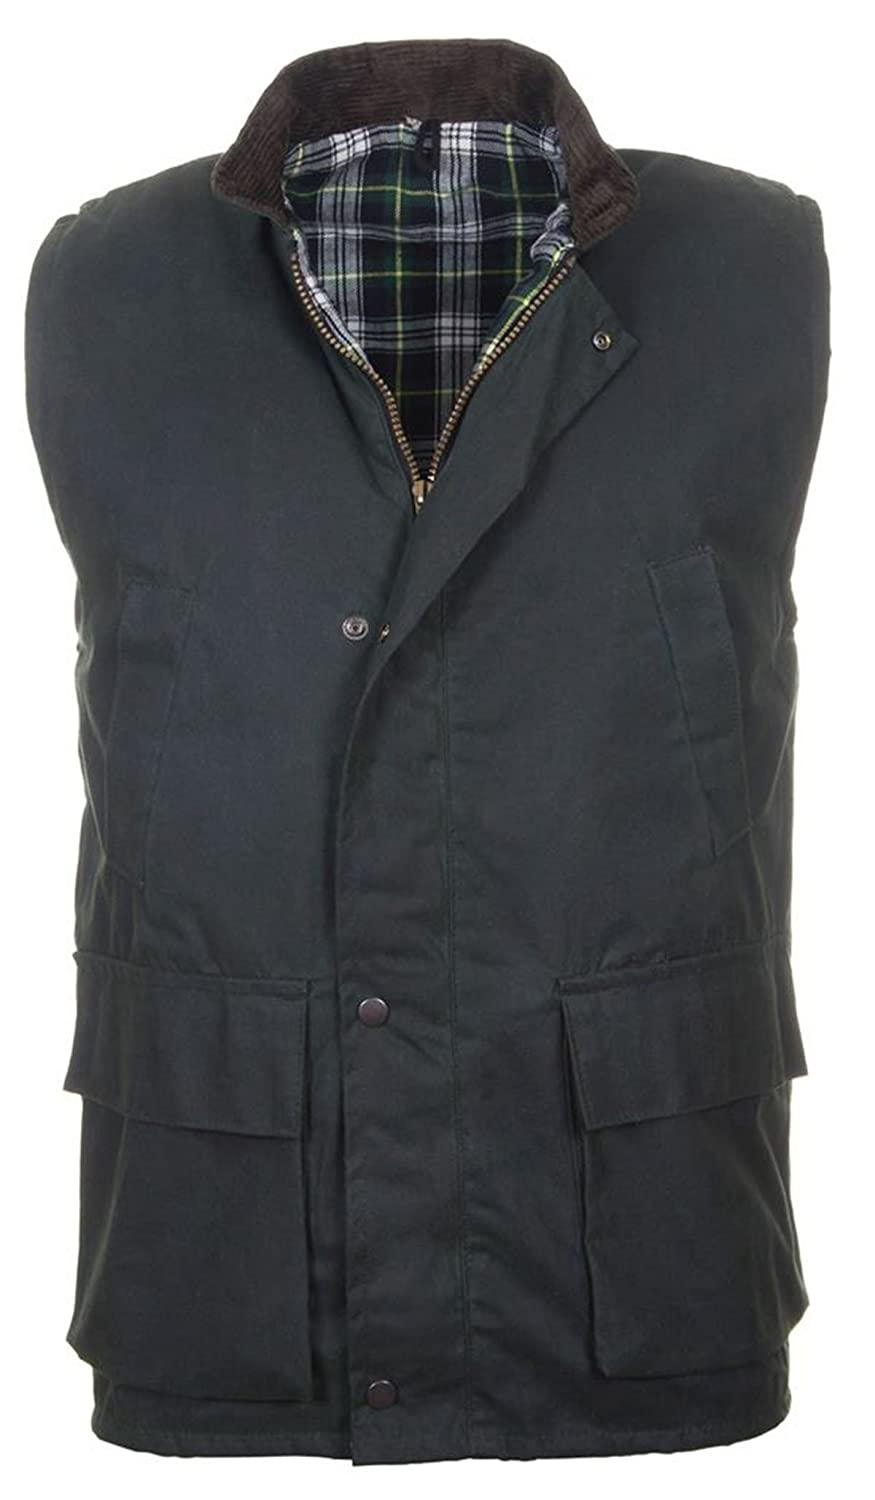 Countrywear New British Made Quilted Wax Gilet Branded Outdoor Bodywarmer Oiled Waistcoat Sleeveless Jacket Fishing Hunting Shooting Farming